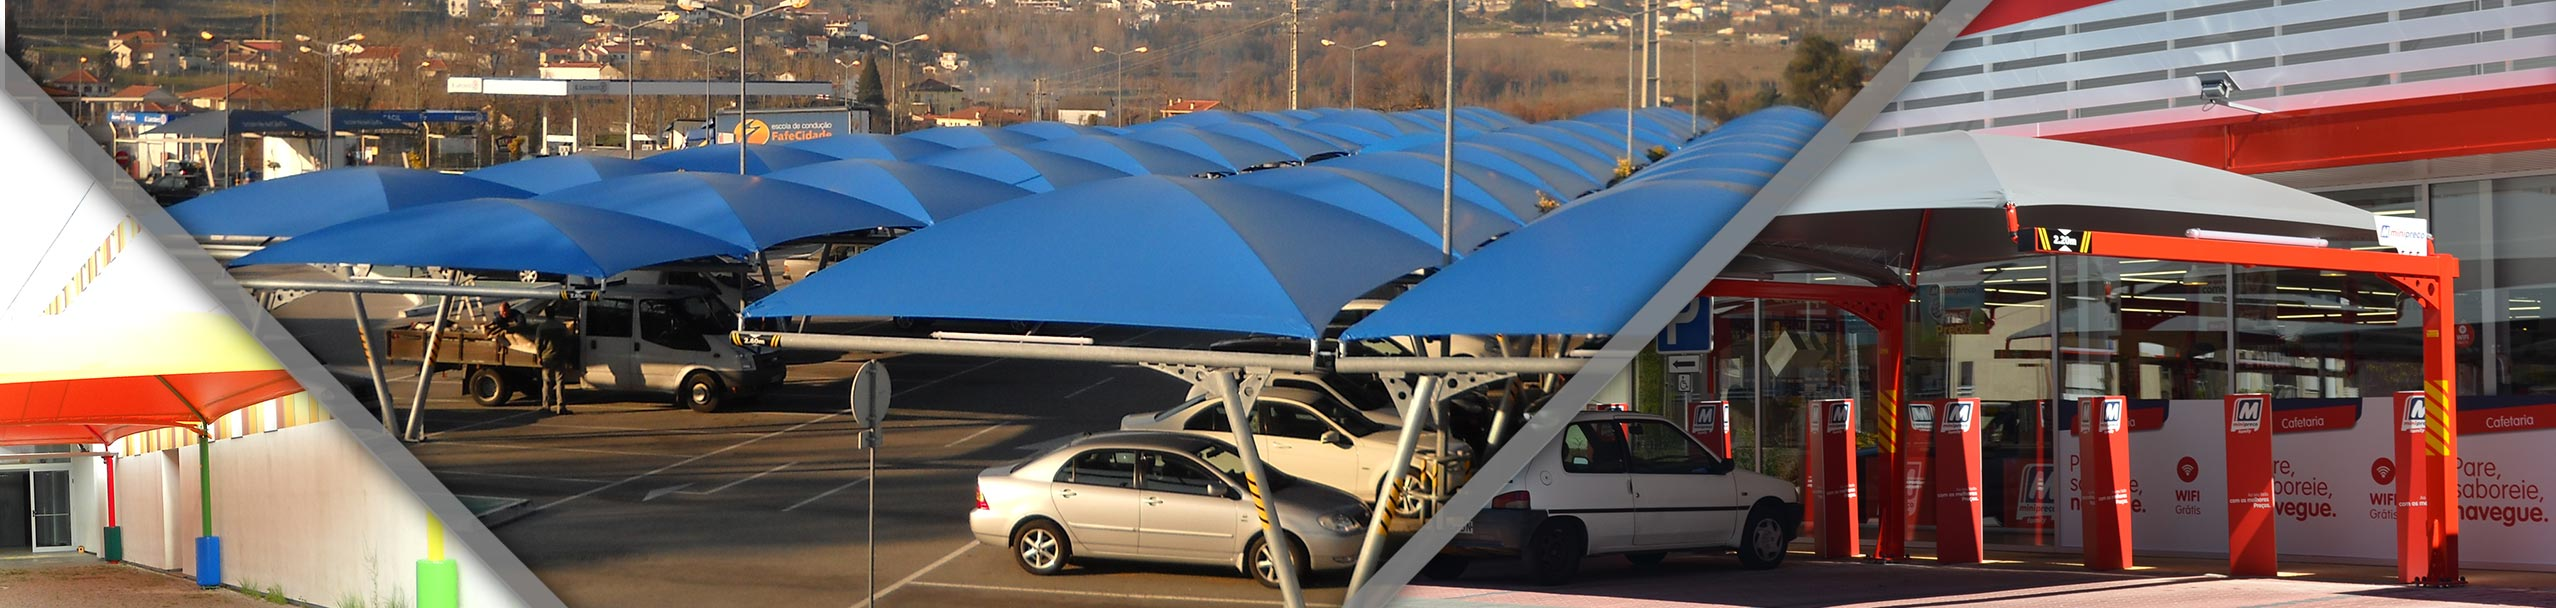 AWNINGS AND METALO-TEXTILE COVERS